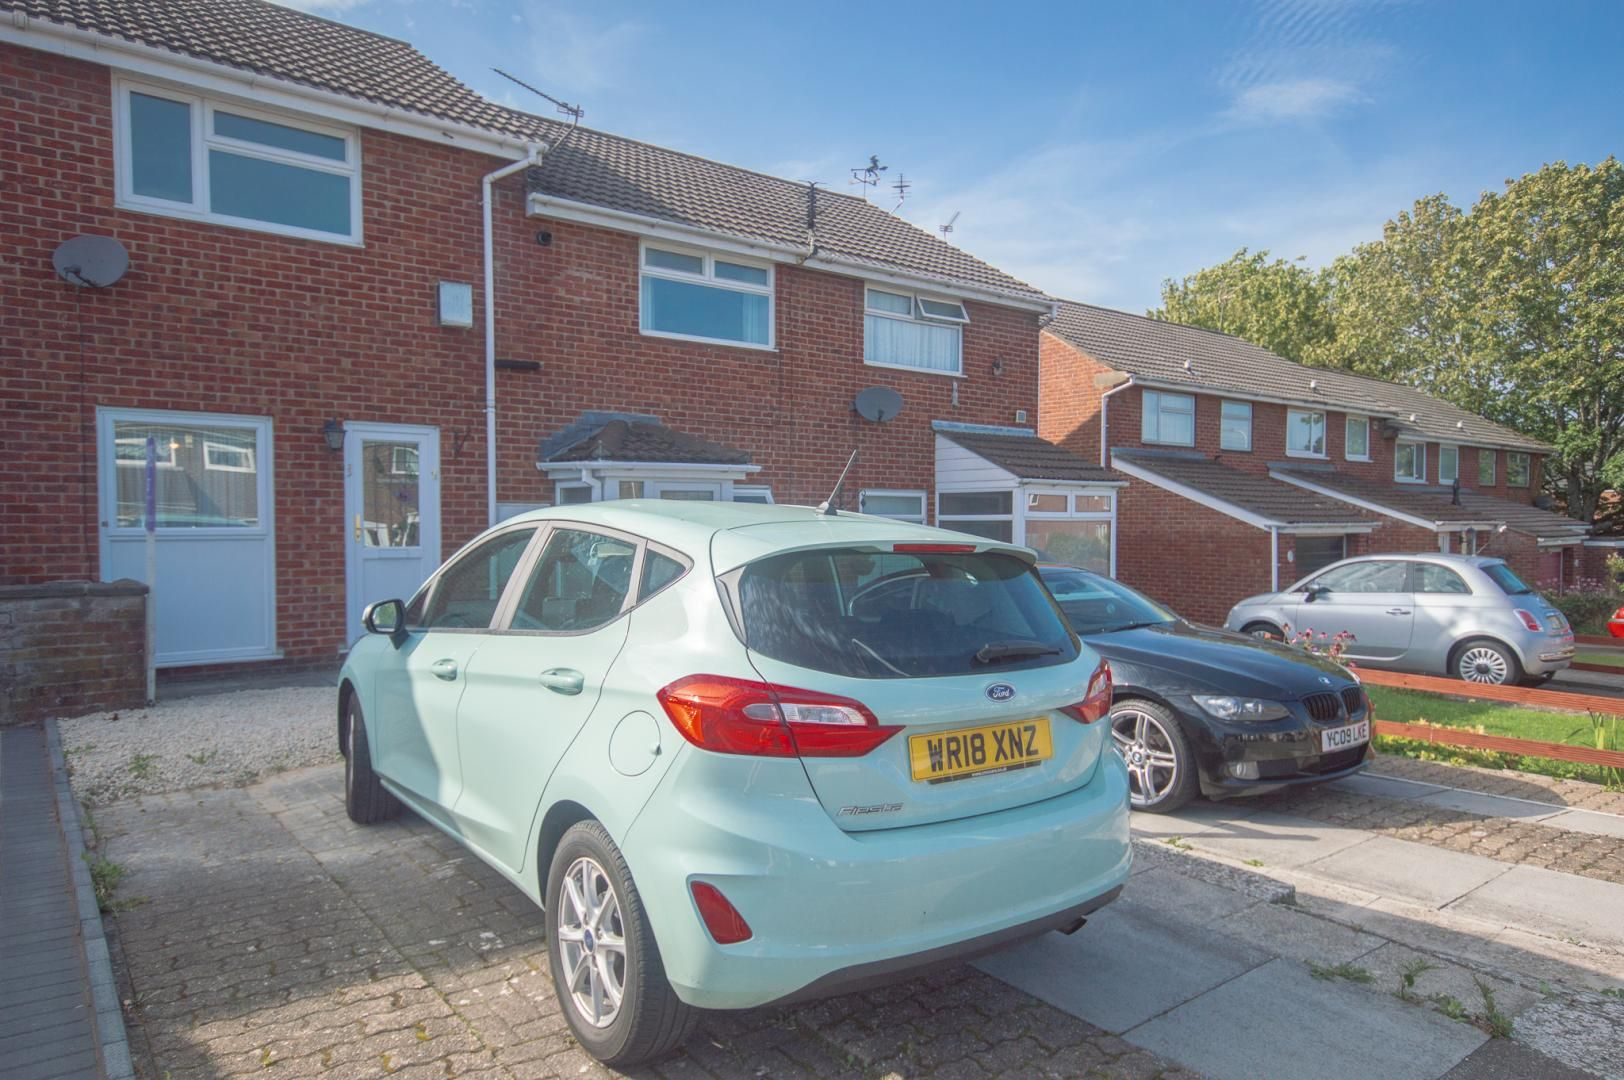 2 bed house to rent in Buxton Close, NP20